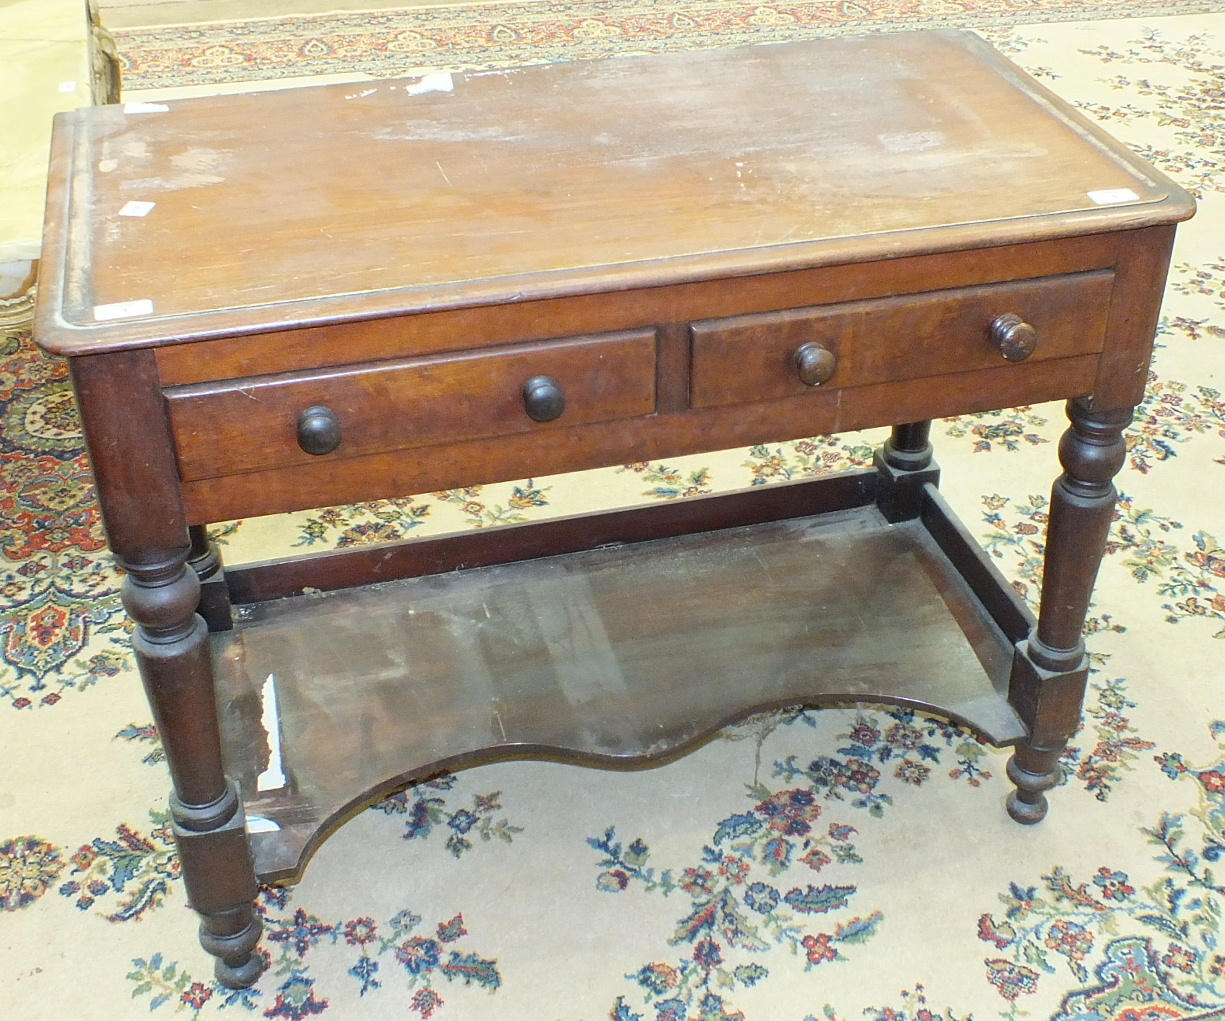 Lot 1 - A late-Victorian mahogany wash stand, the rectangular top above two frieze drawers, on turned legs